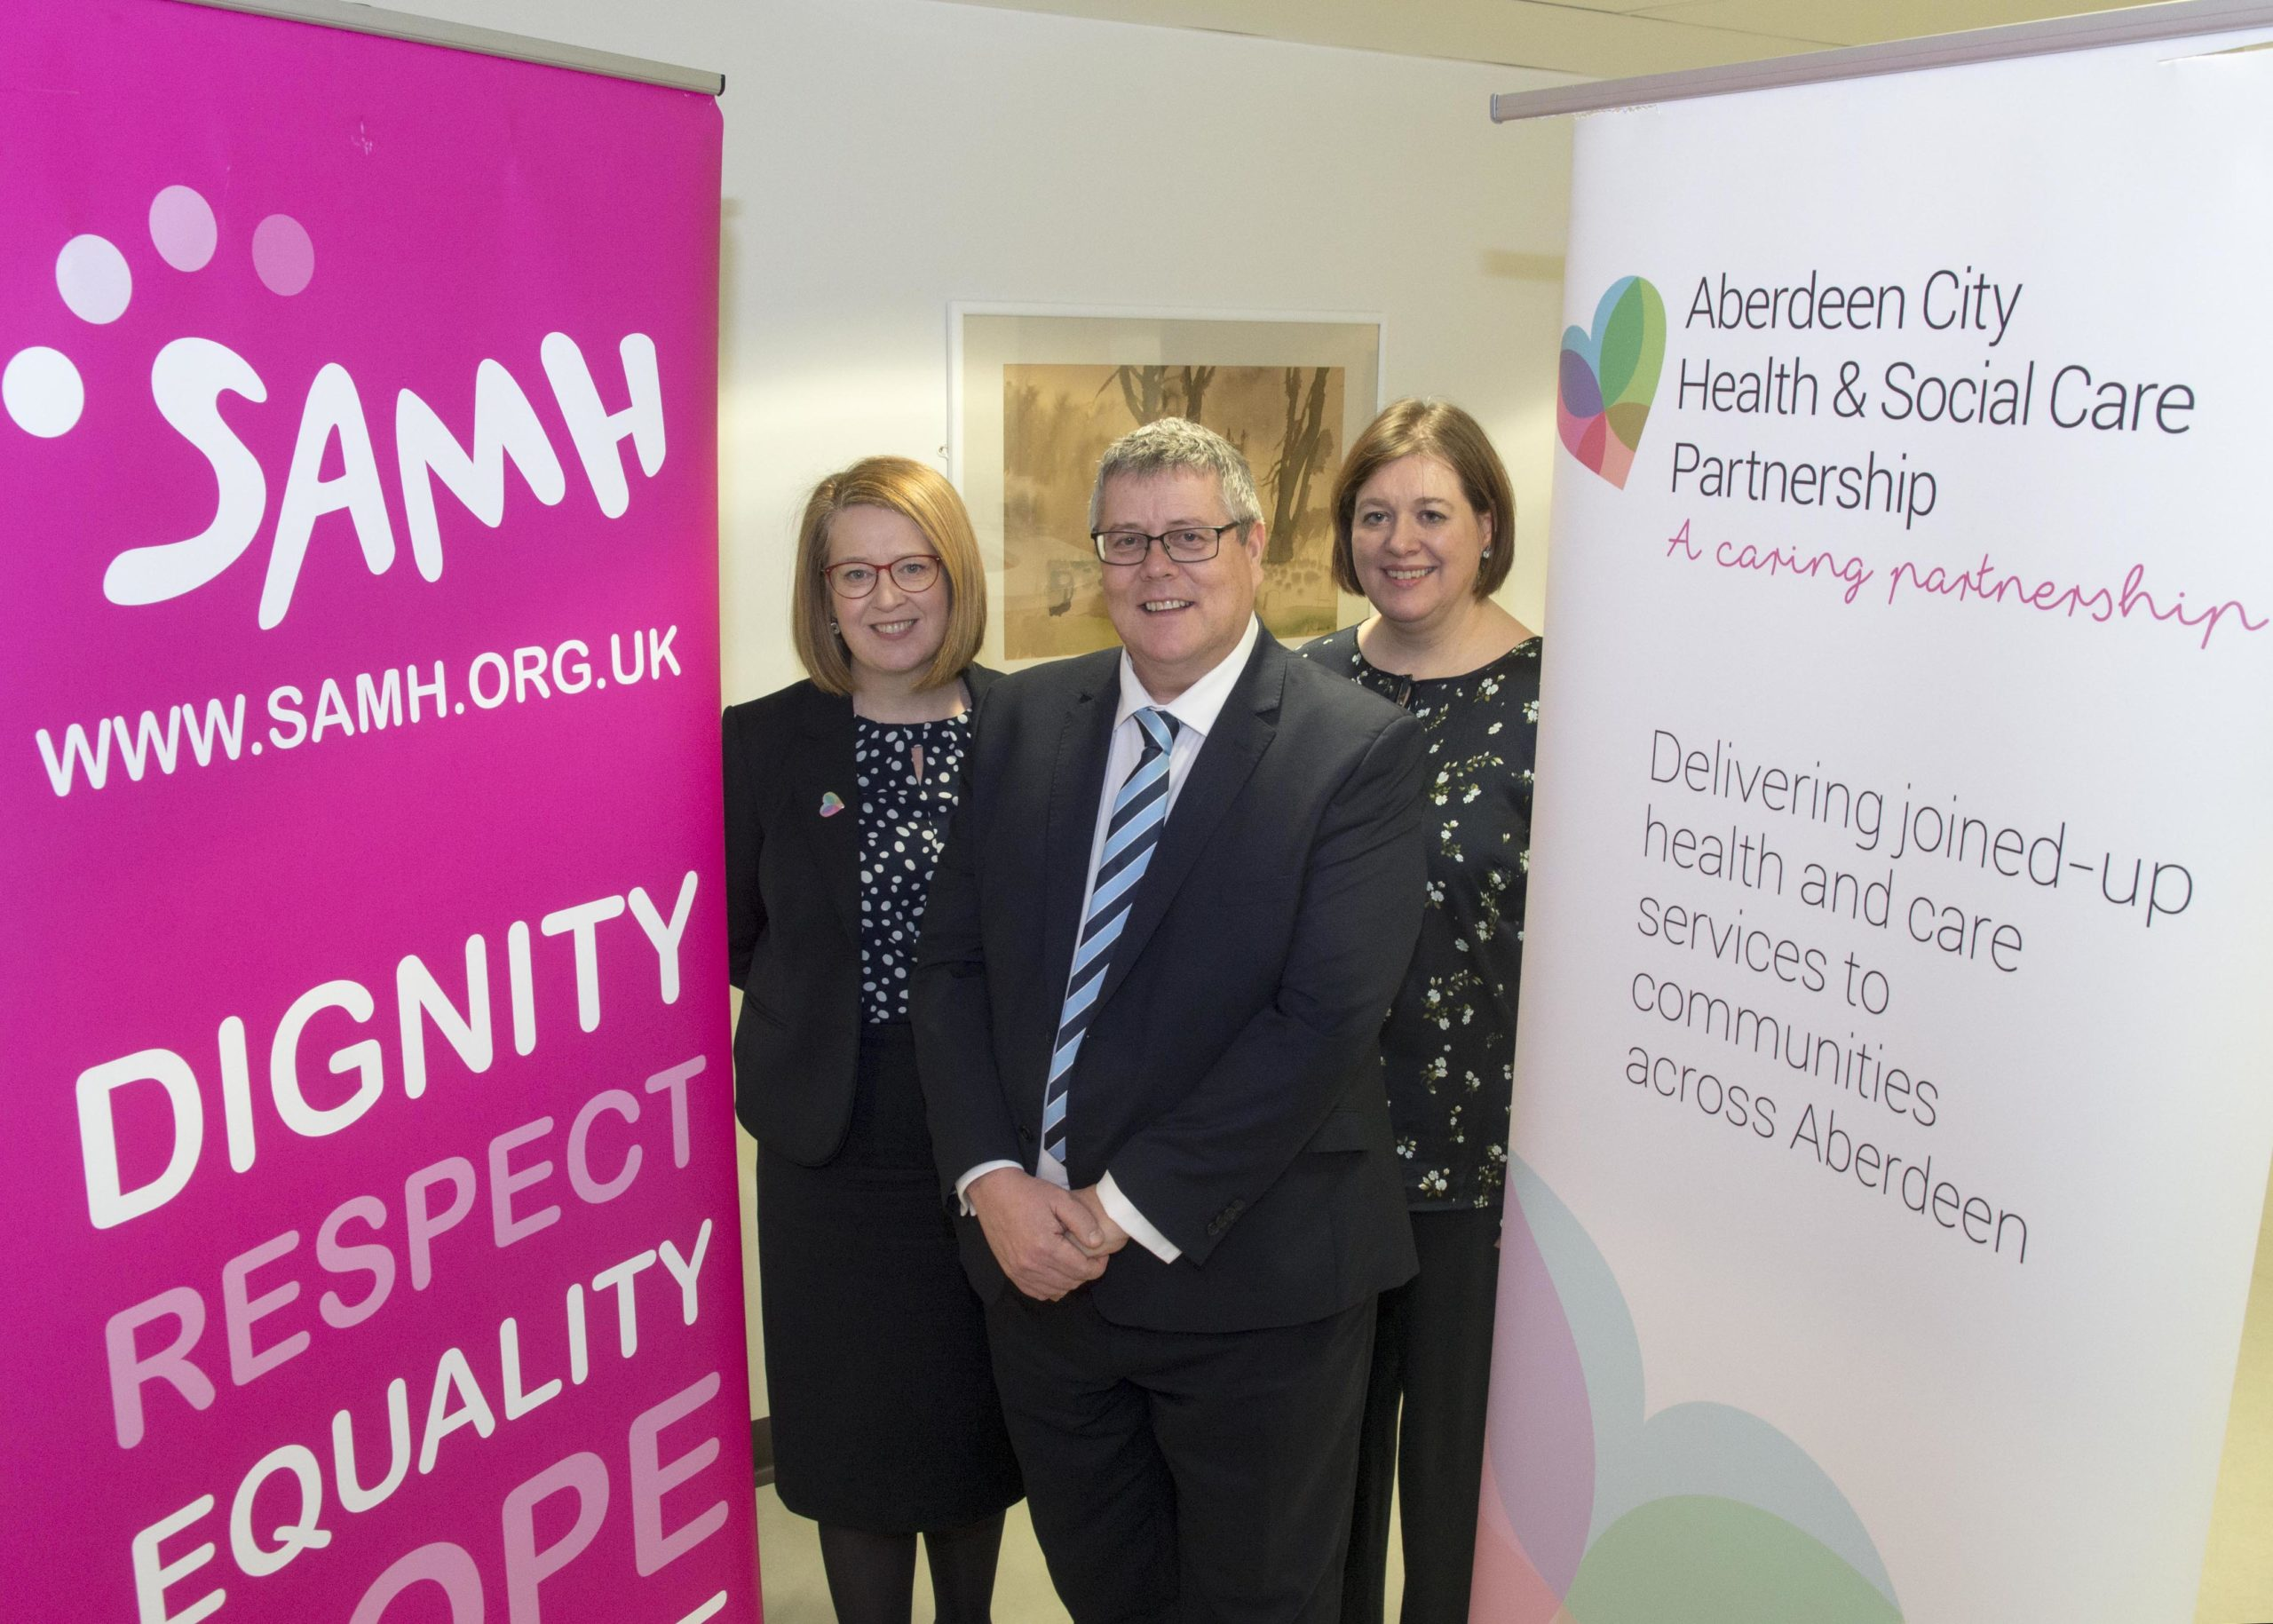 Aberdeen City Health and Social Care Partnership encourages people to recognise north-east volunteers